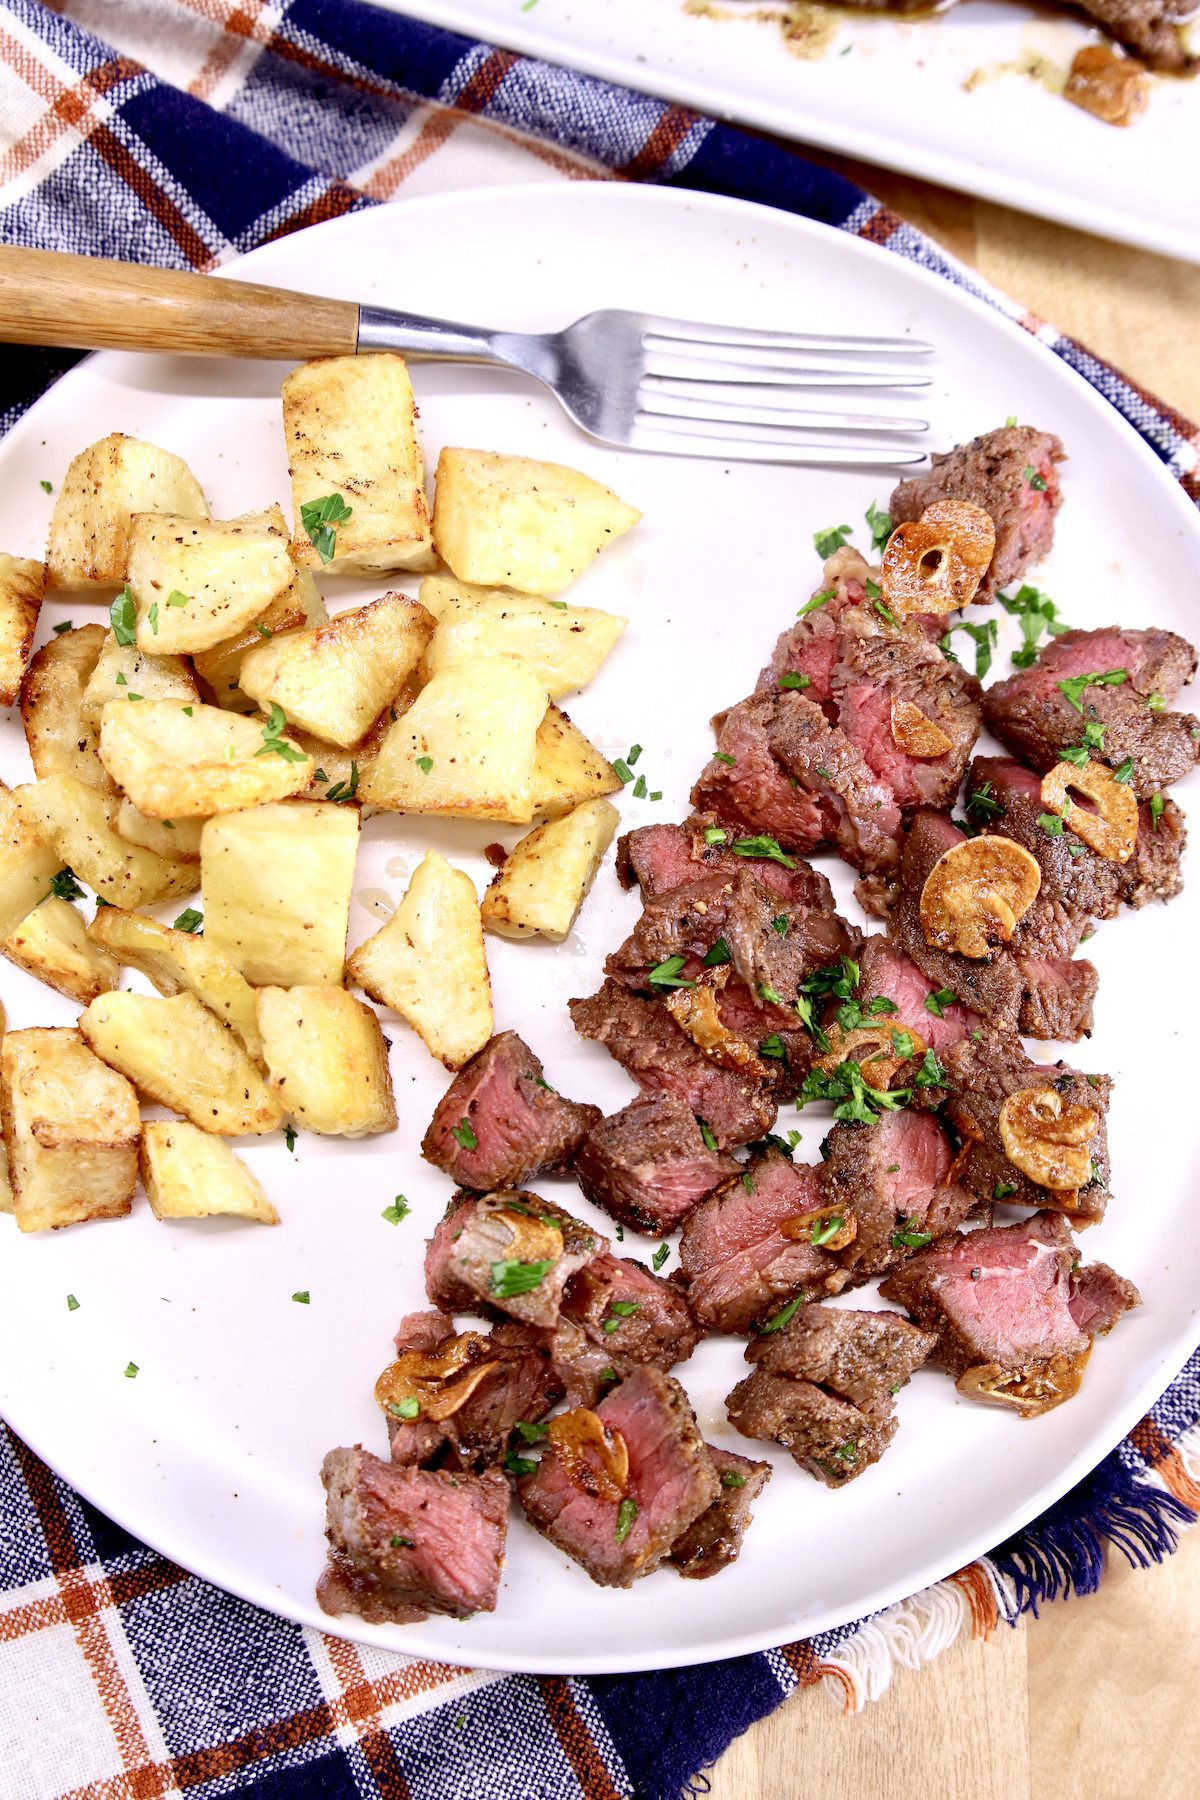 steak bites and potatoes on a plate